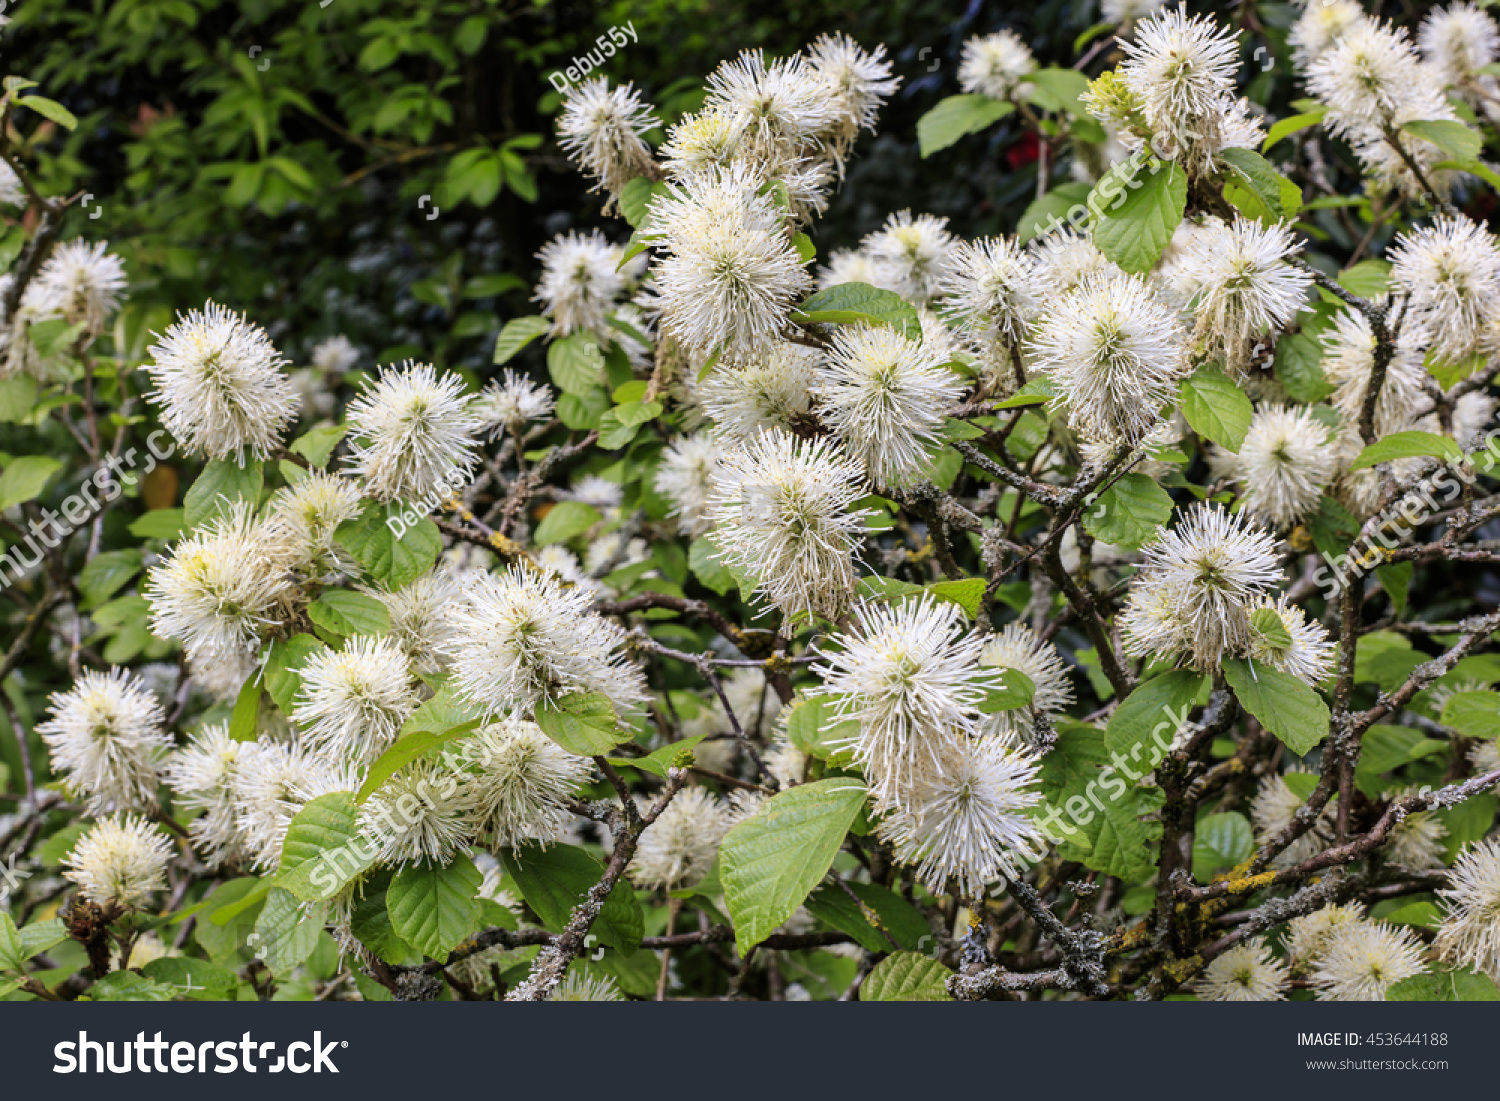 White Furry Pompom Like Flowering Shrub Stock Photo Edit Now